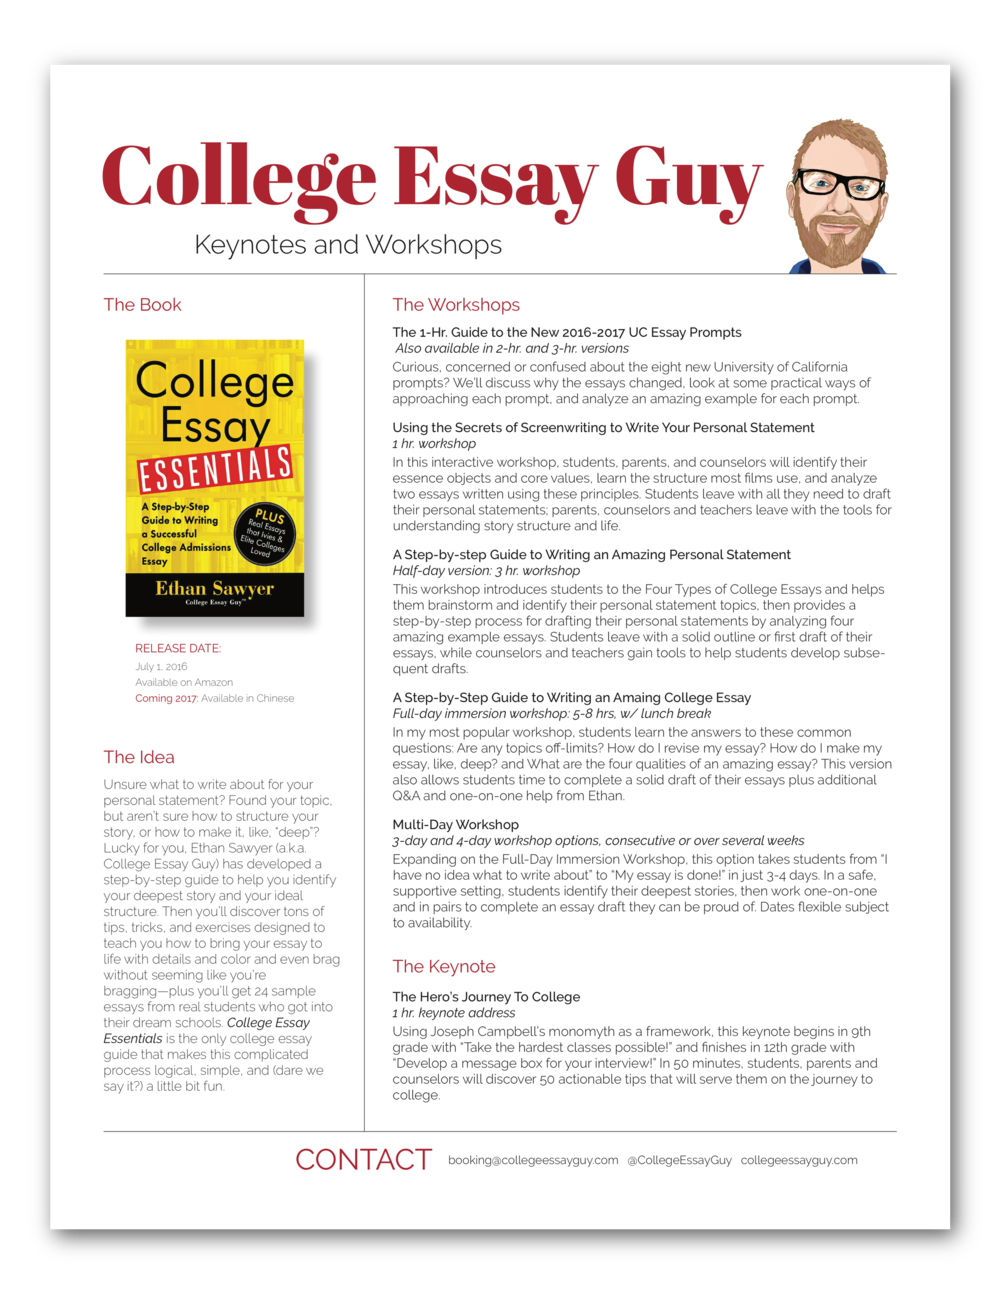 workshops college essay guy get inspired a workshop at your school or organization